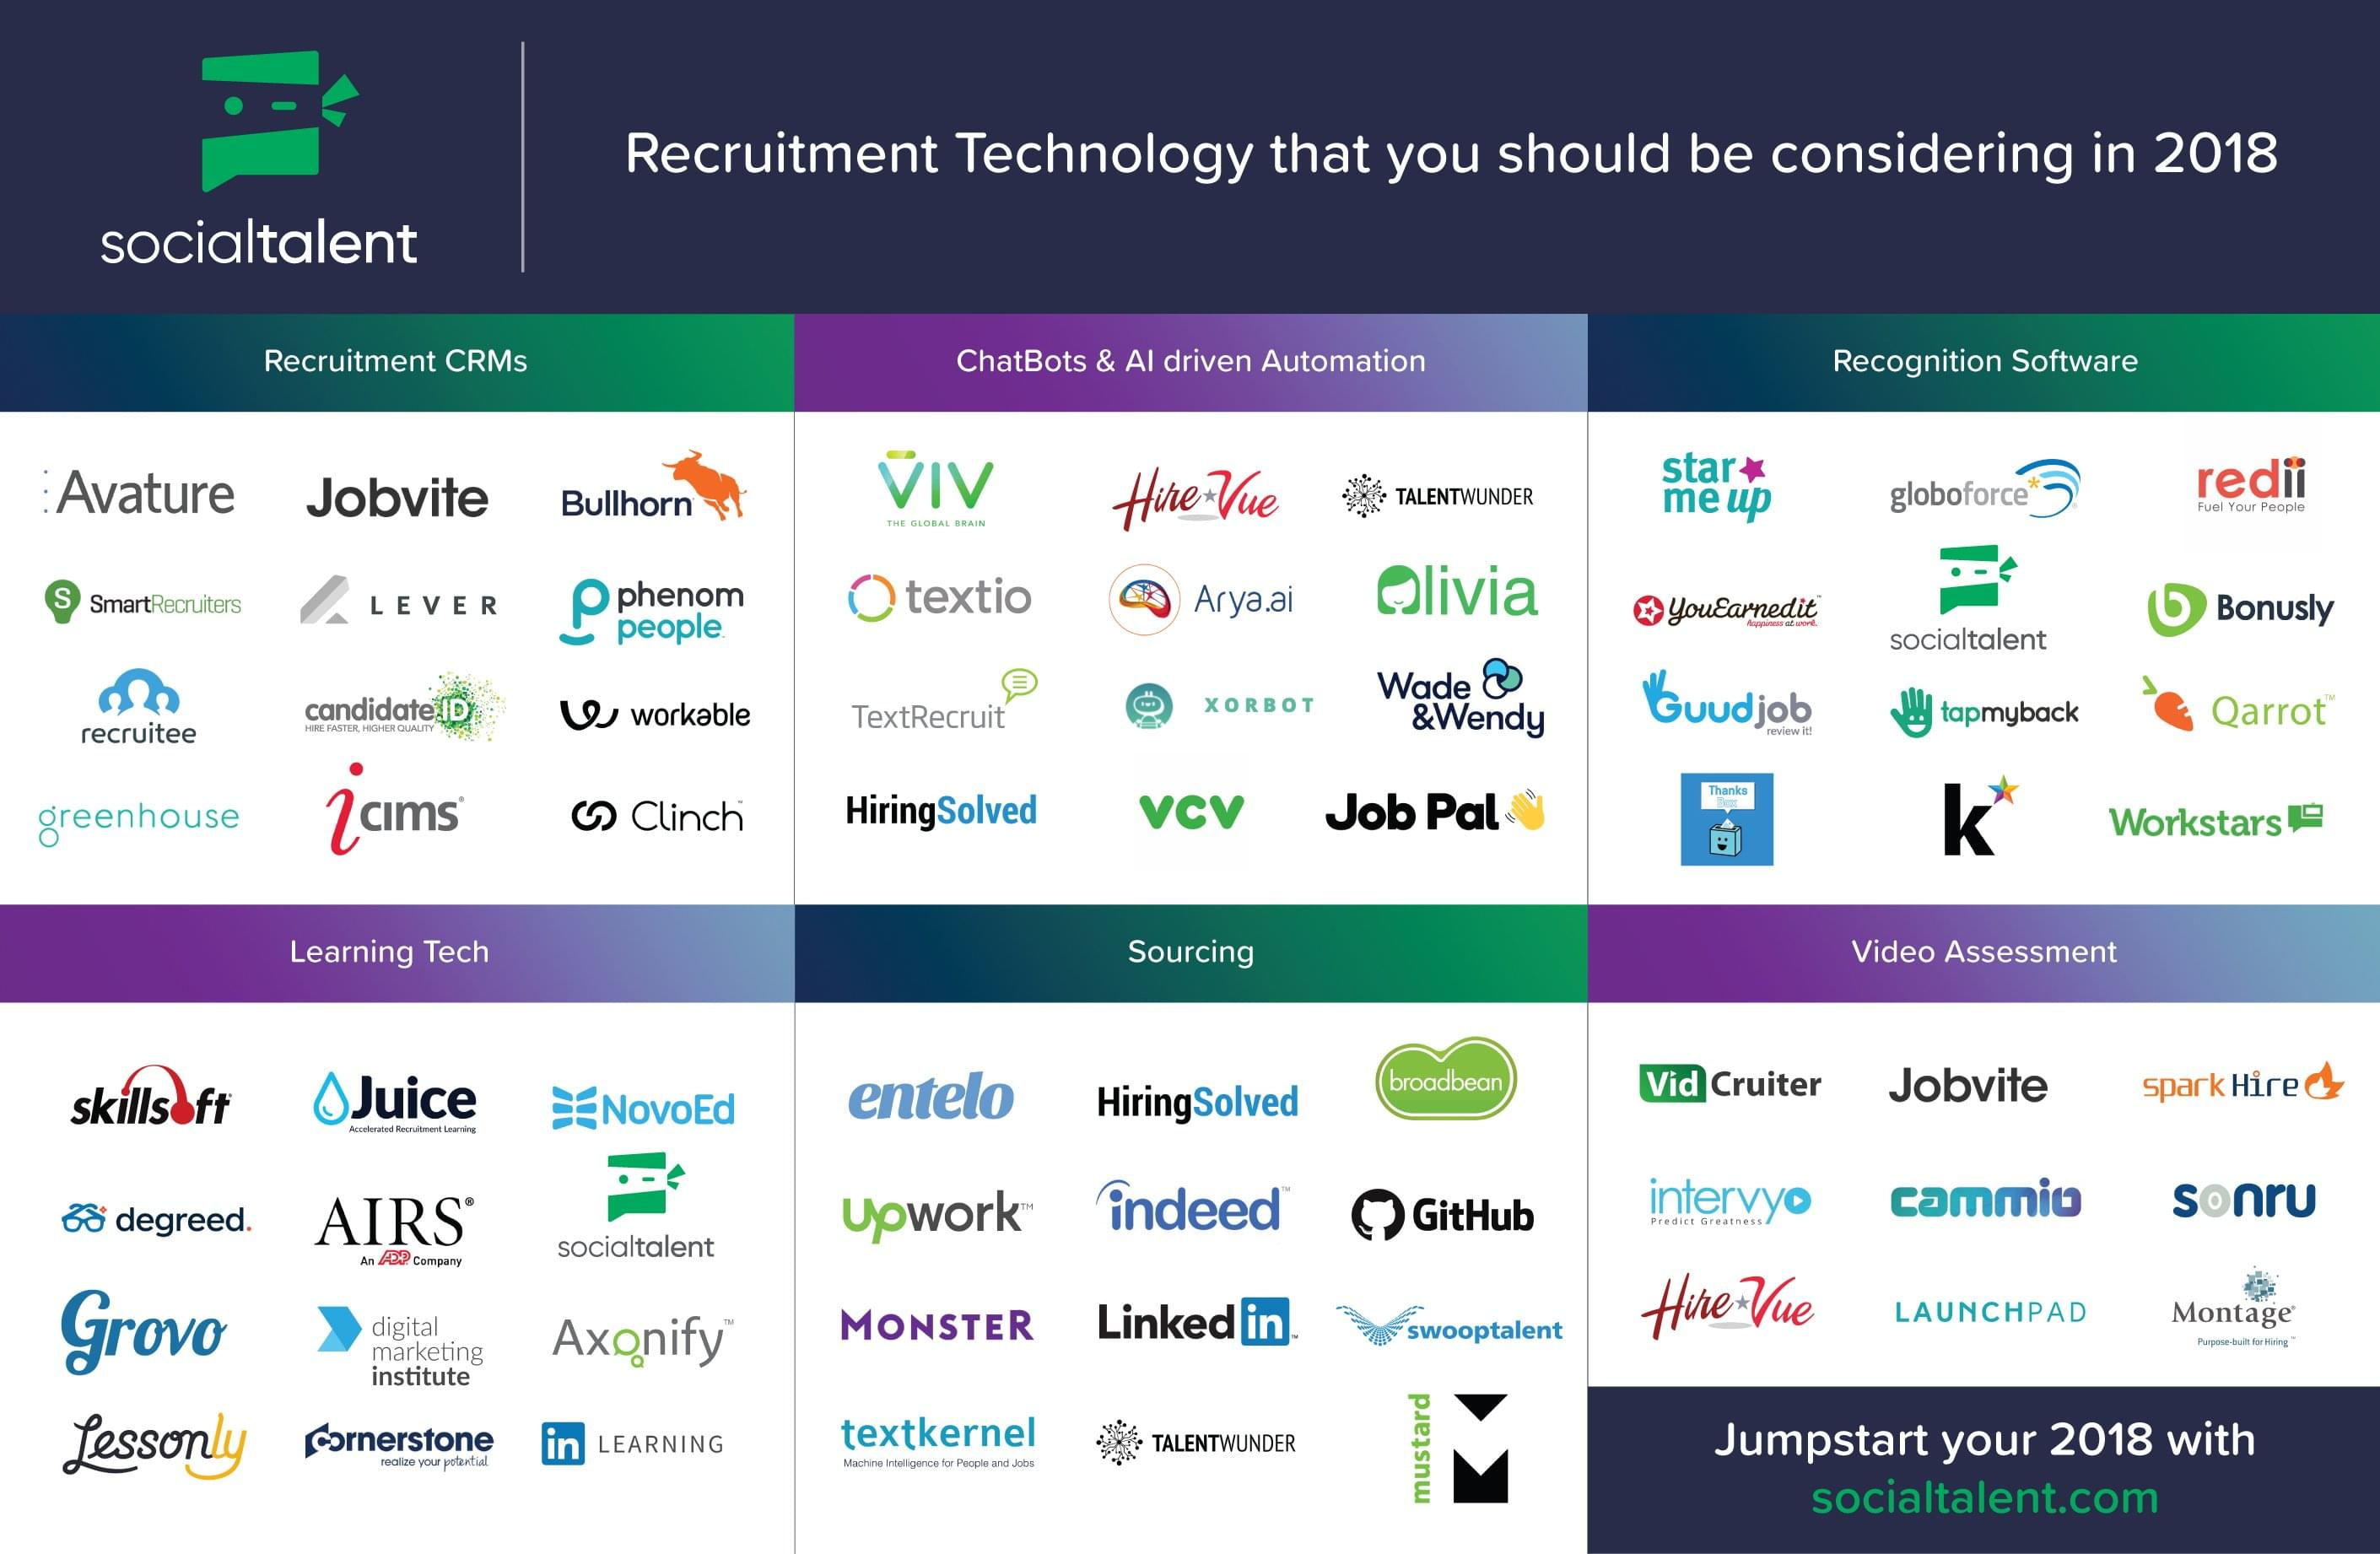 Technology that is enabling recruiters